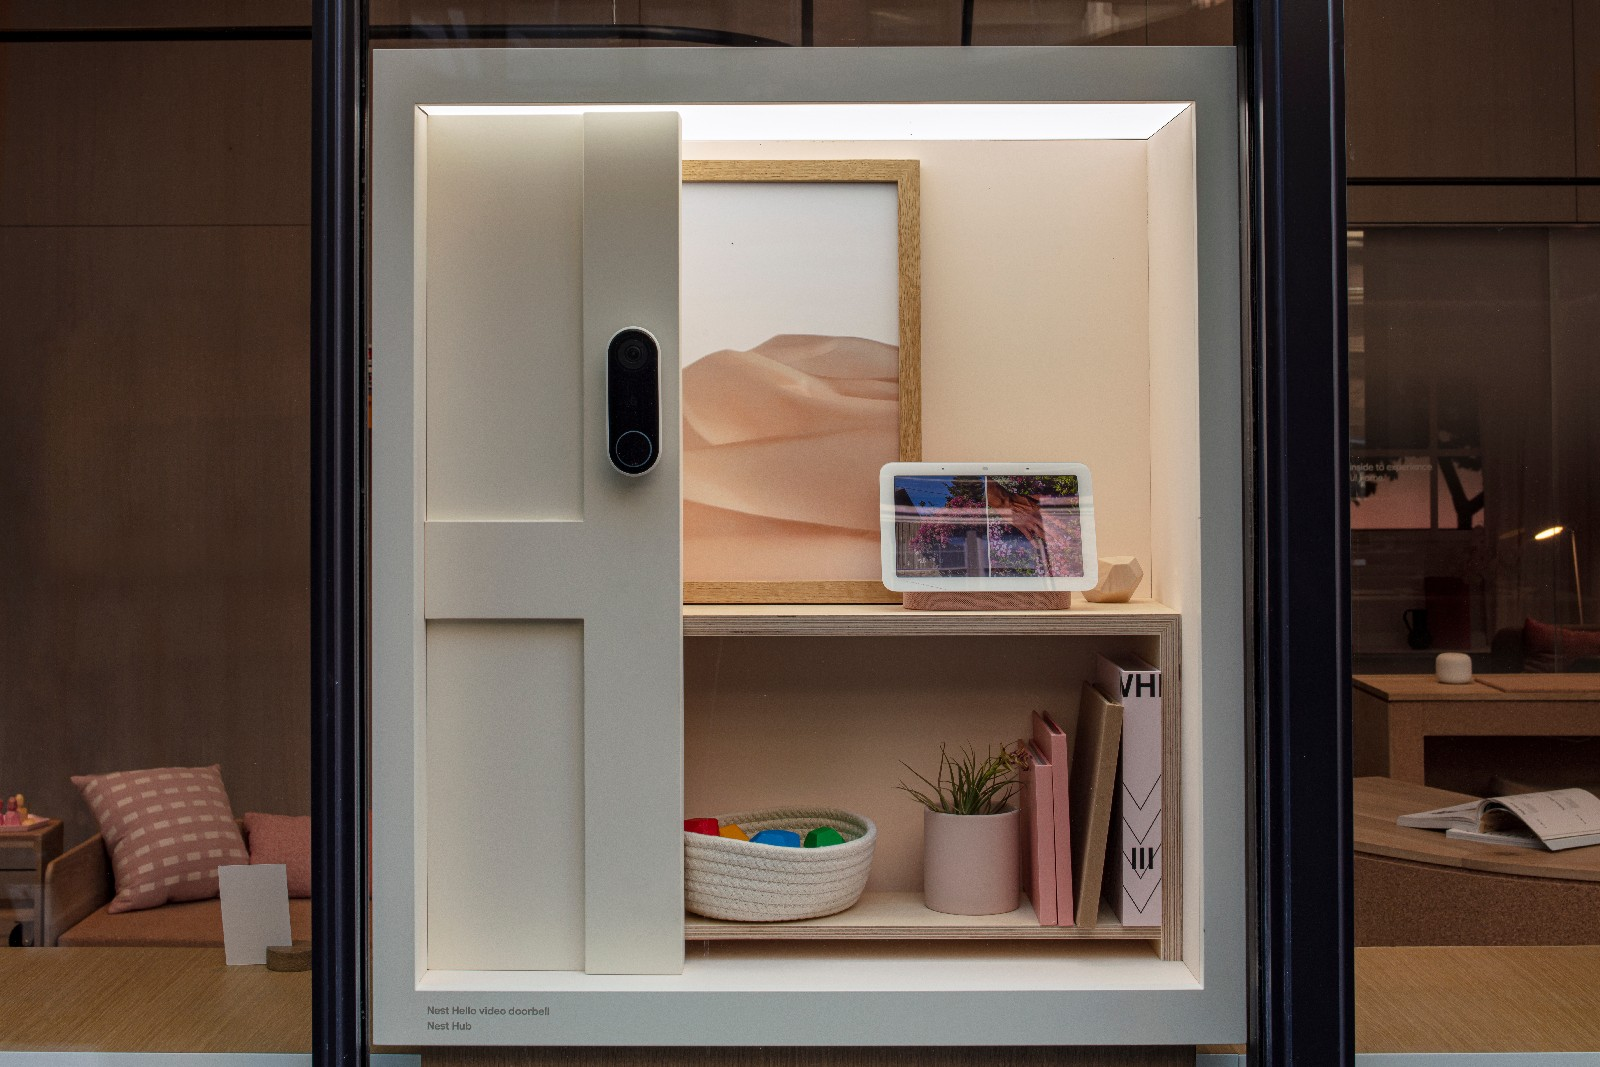 <p>Google Store Chelsea. A Discovery box in the store showcasing Google products like a smart display and Pixel phone.</p>